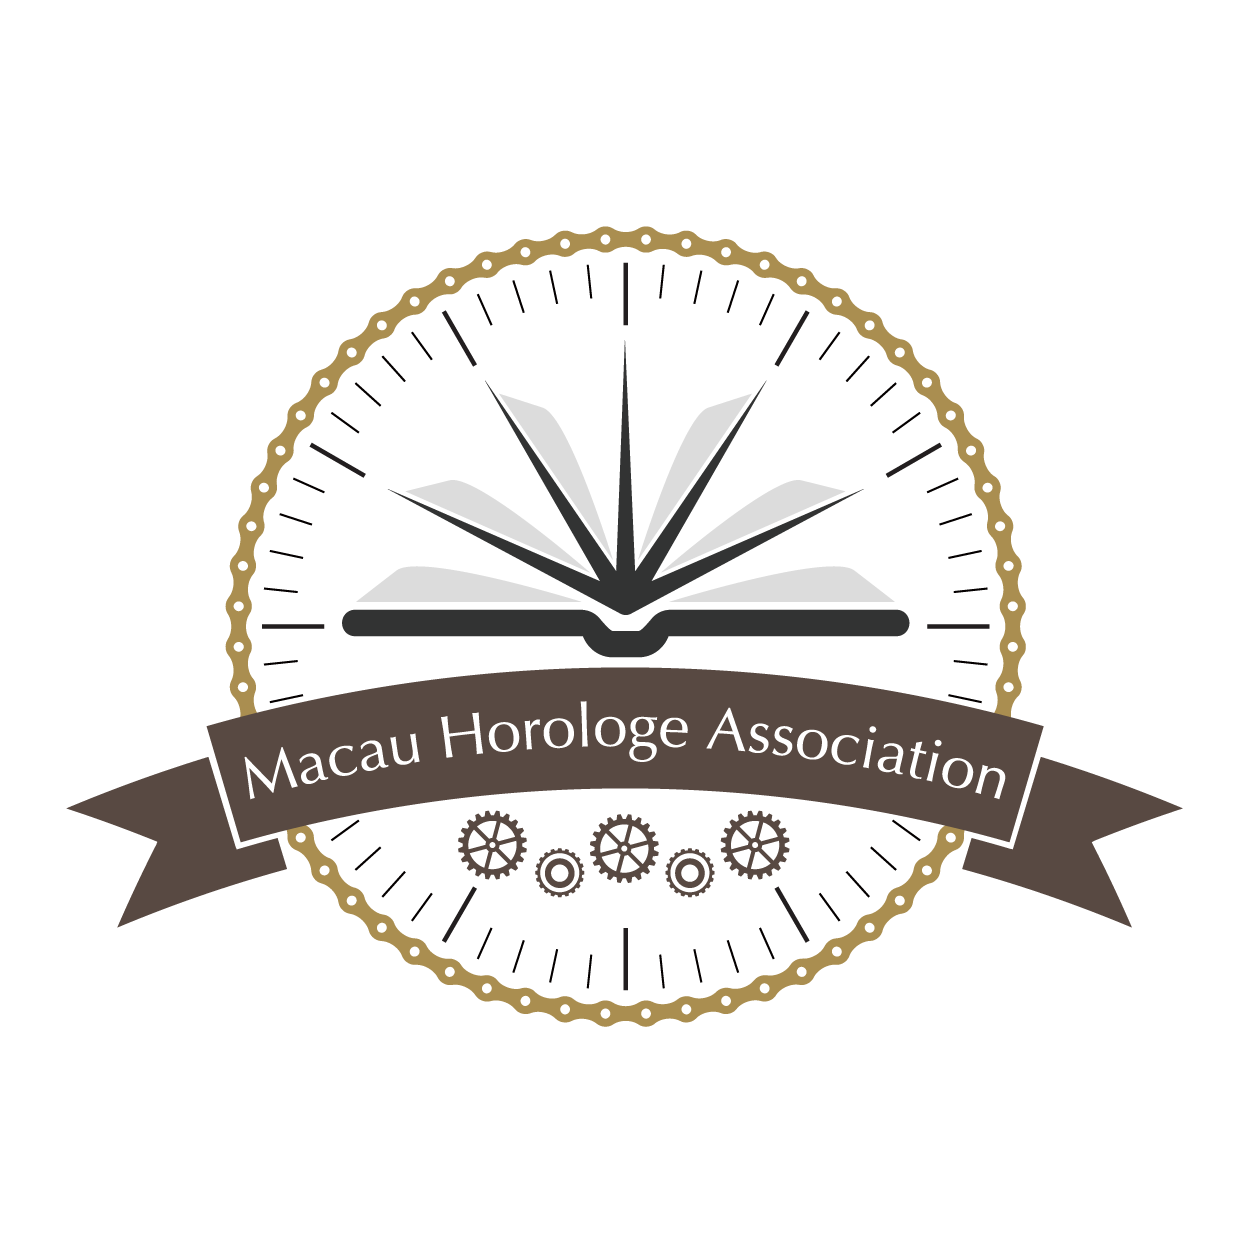 Macau Horologe Association_C_PNG_画板 1.png